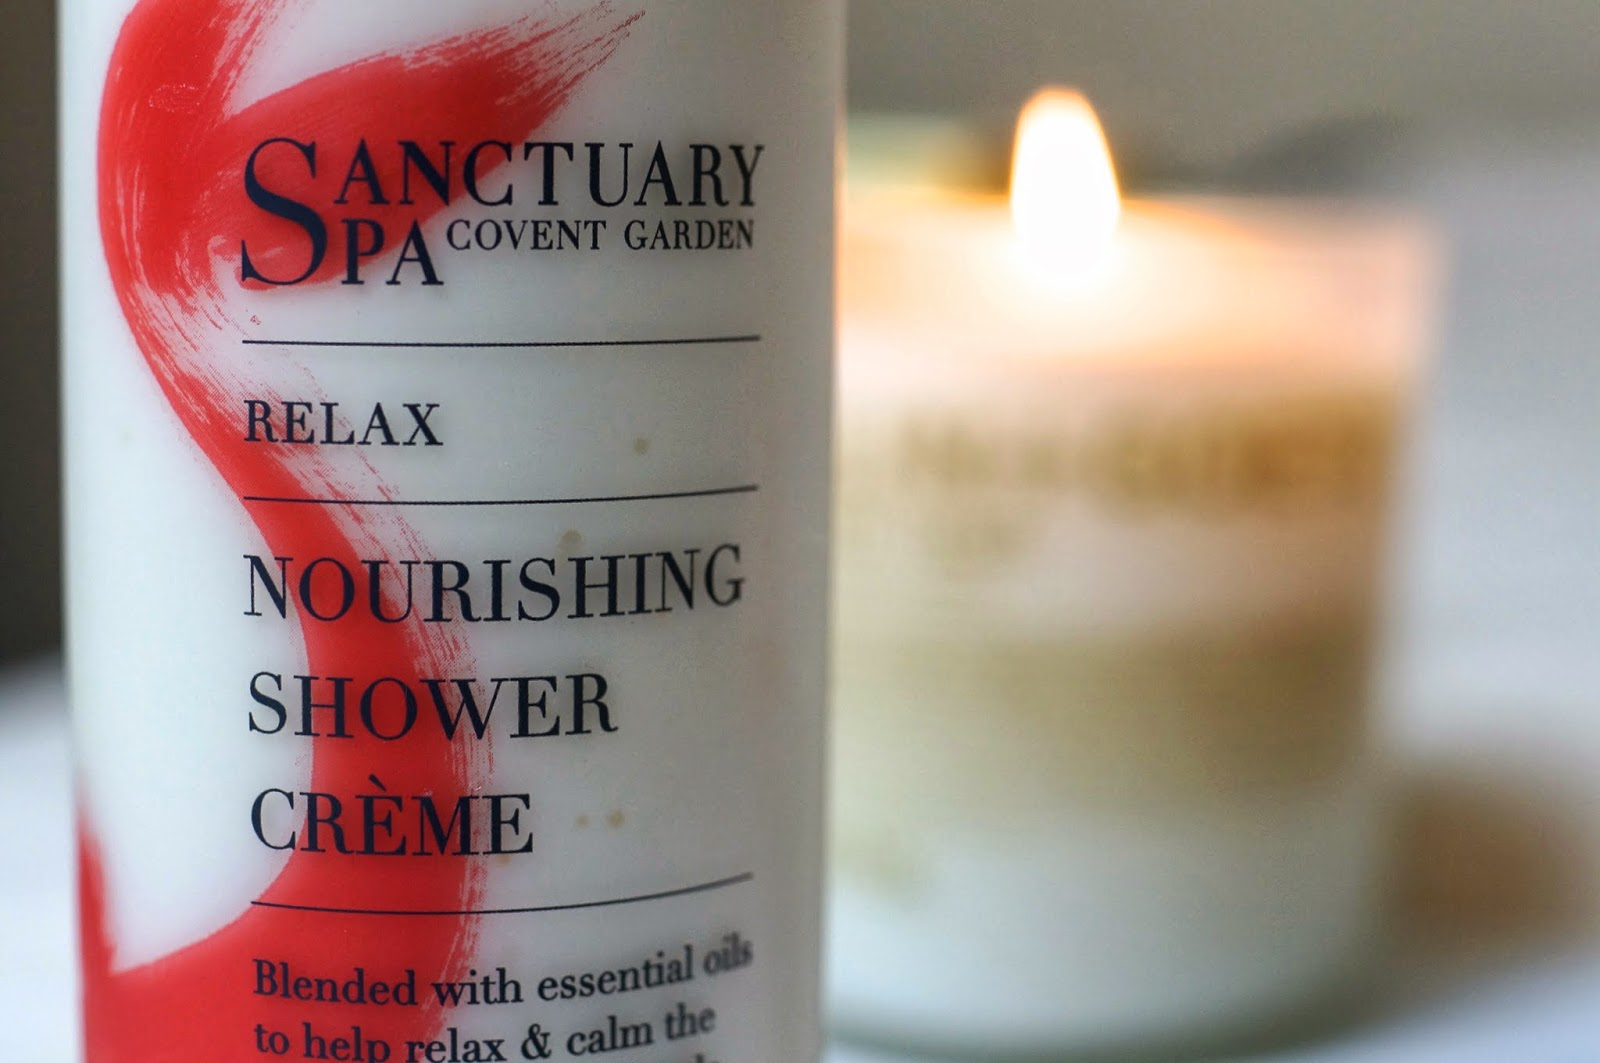 Sanctuary Spa Nourishing Shower Creme